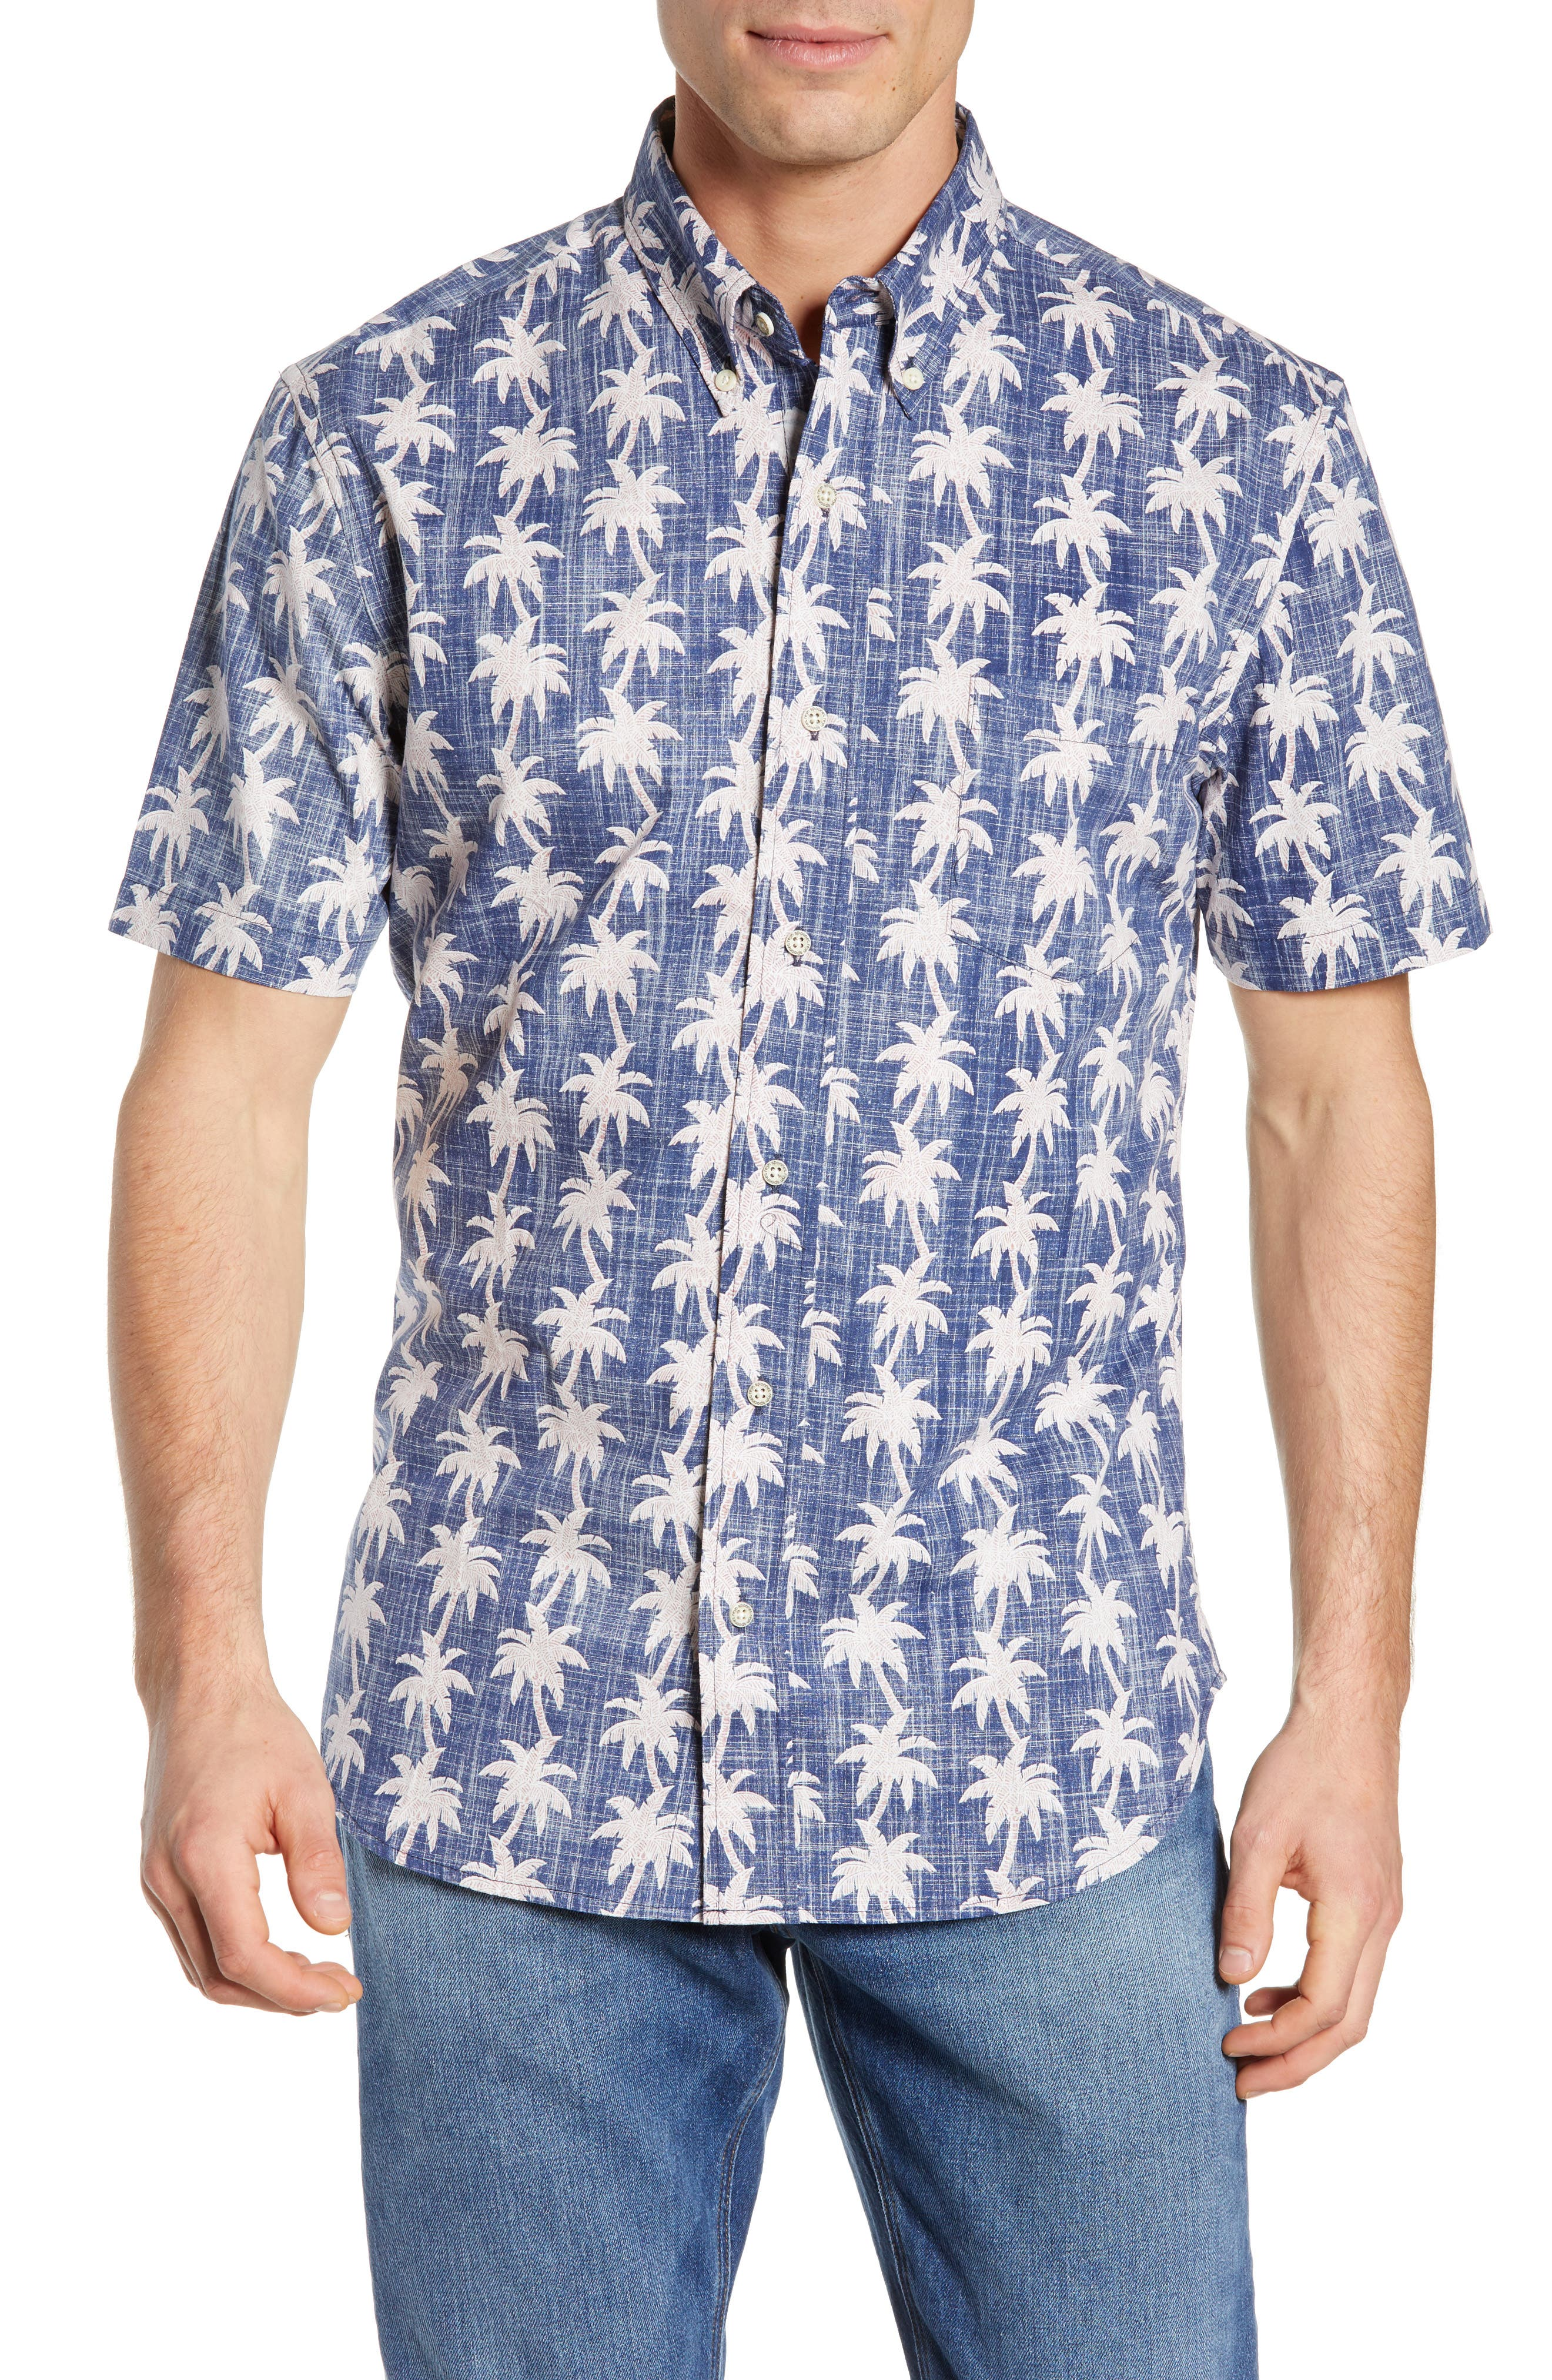 REYN SPOONER, My Maui Palm Tailored Fit Sport Shirt, Main thumbnail 1, color, MEDIEVAL BLUE